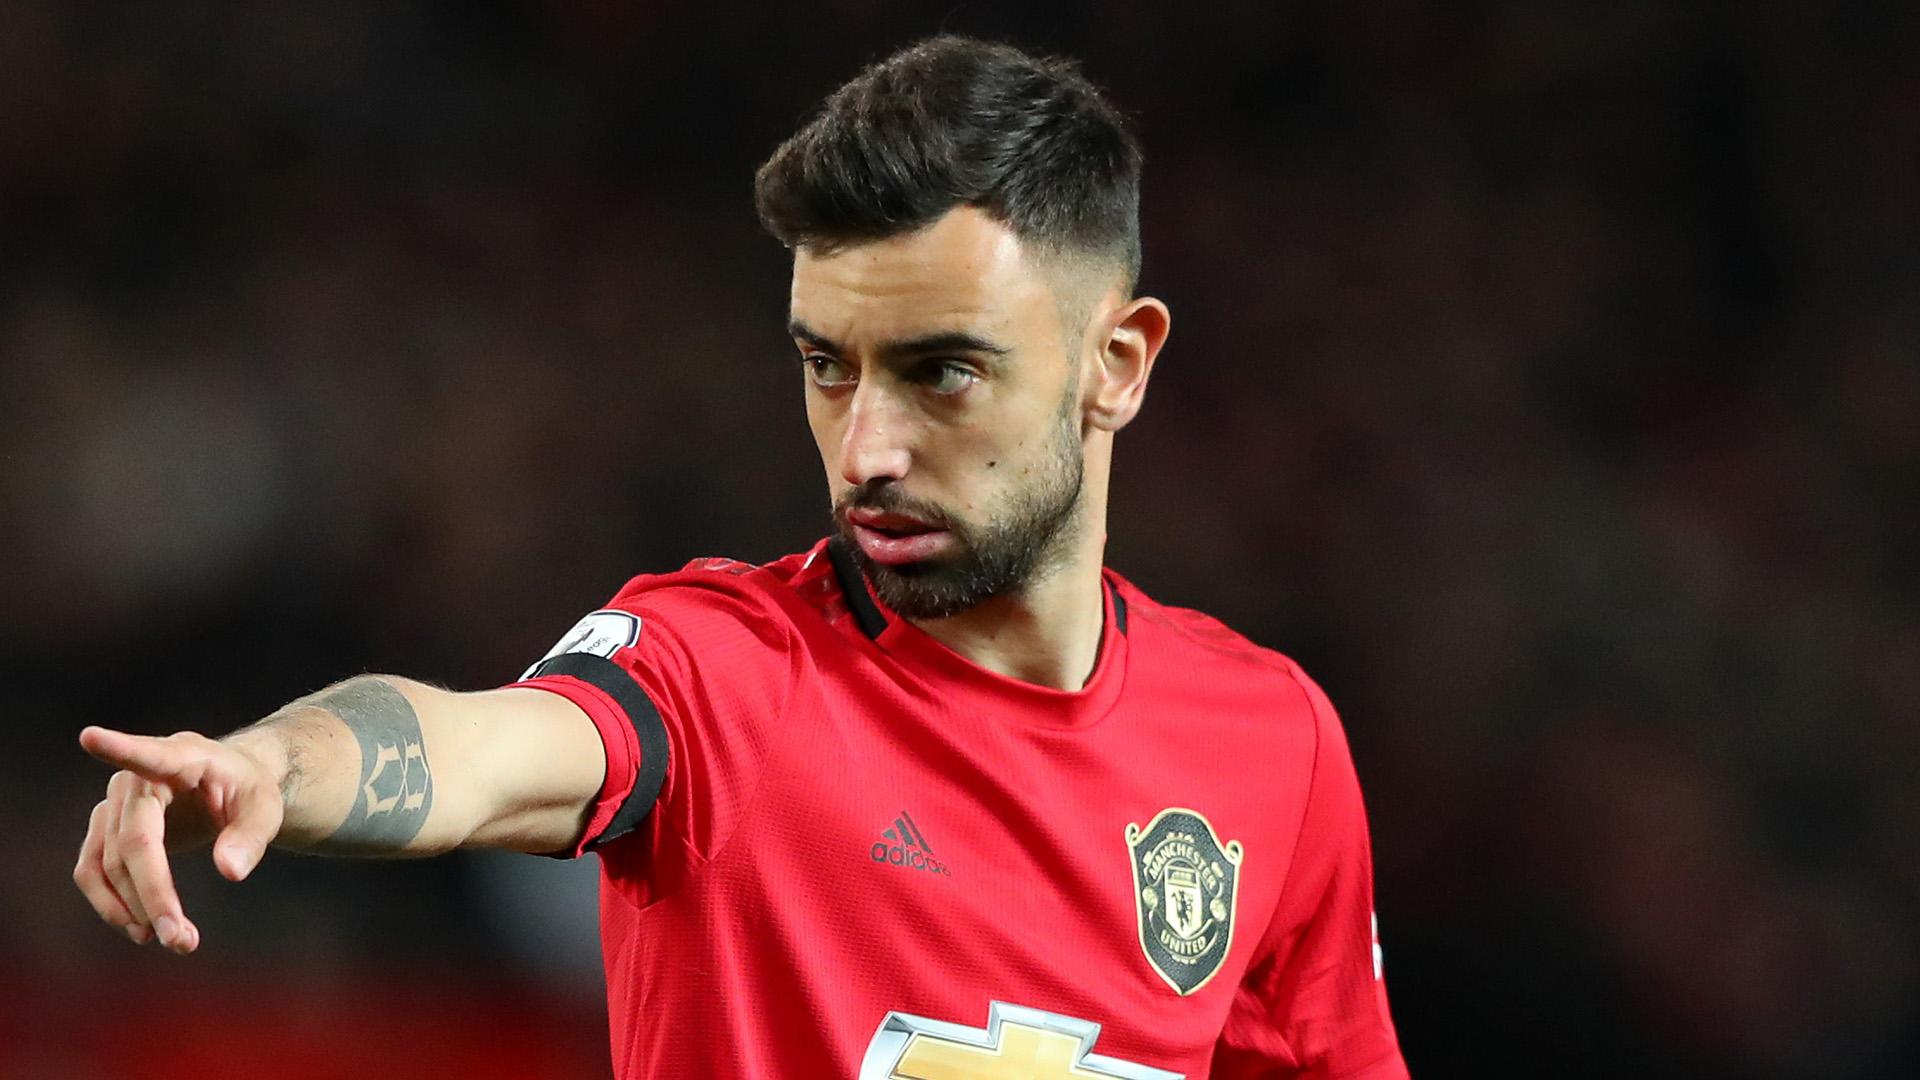 'Fernandes can make Man Utd title challengers' – Berbatov sees Red Devils closing gap to Liverpool and City